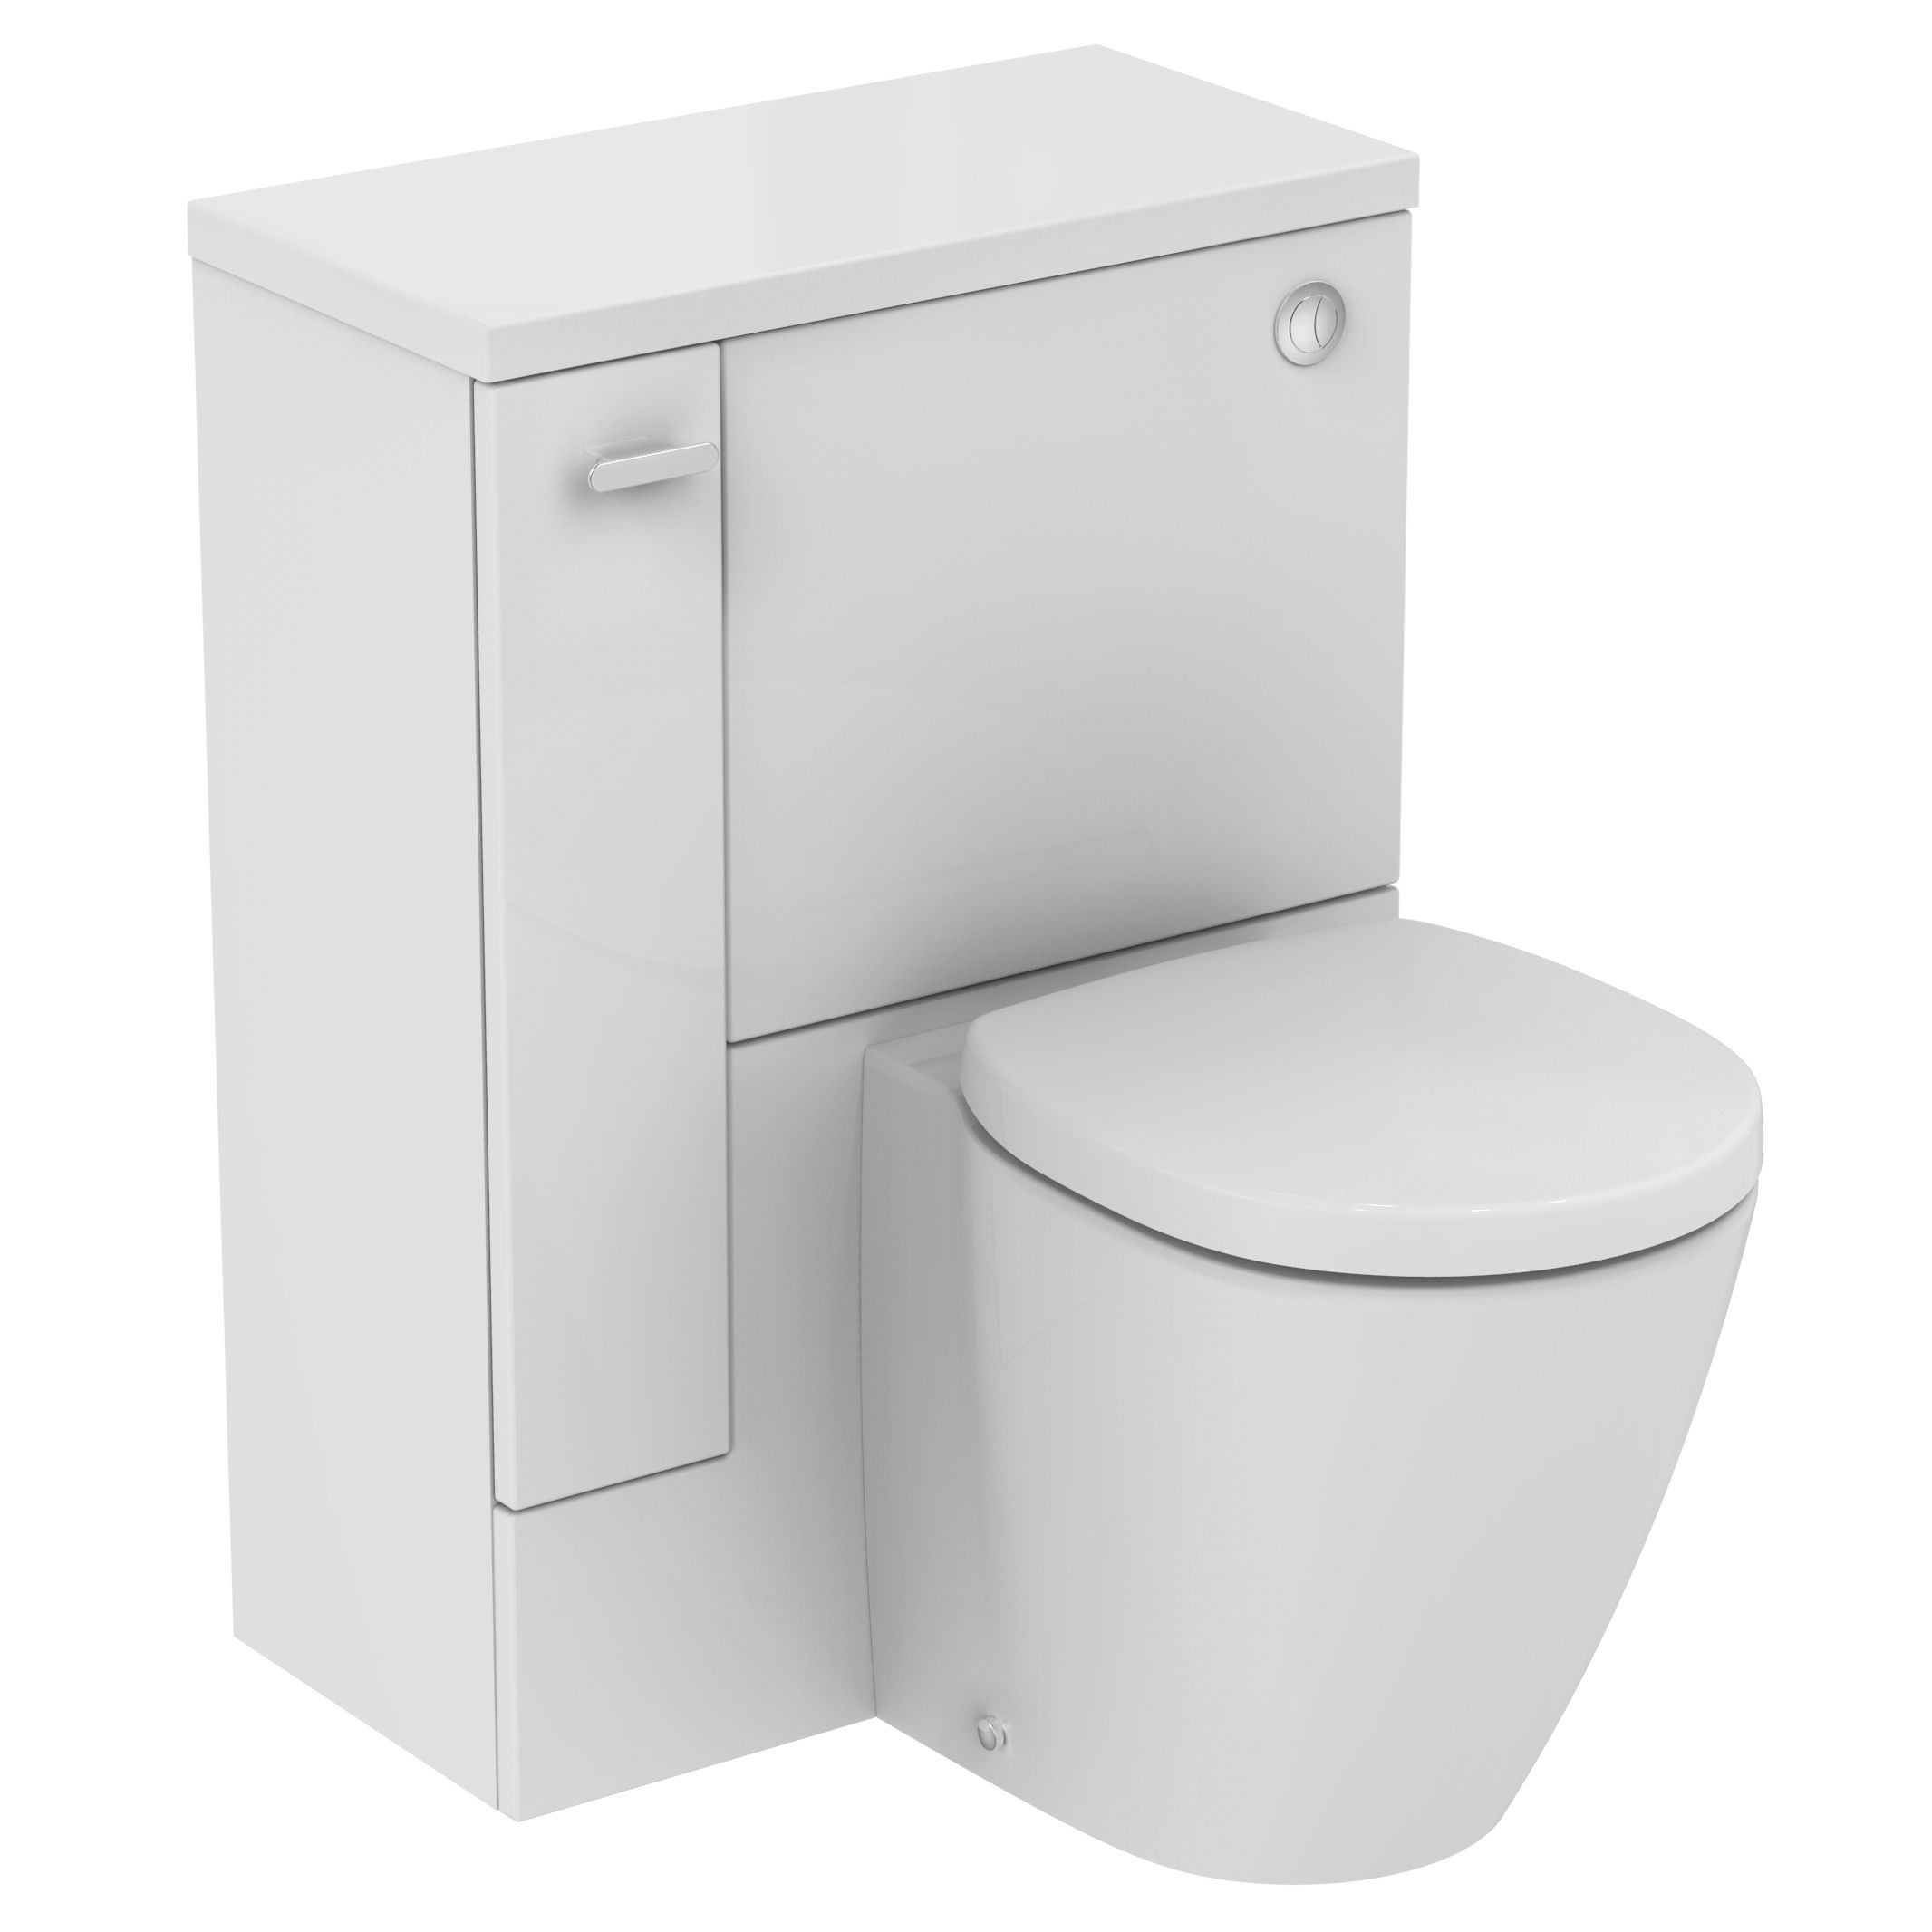 ideal standard imagine compact lh back to wall toilet unit wc set with soft close seat. Black Bedroom Furniture Sets. Home Design Ideas